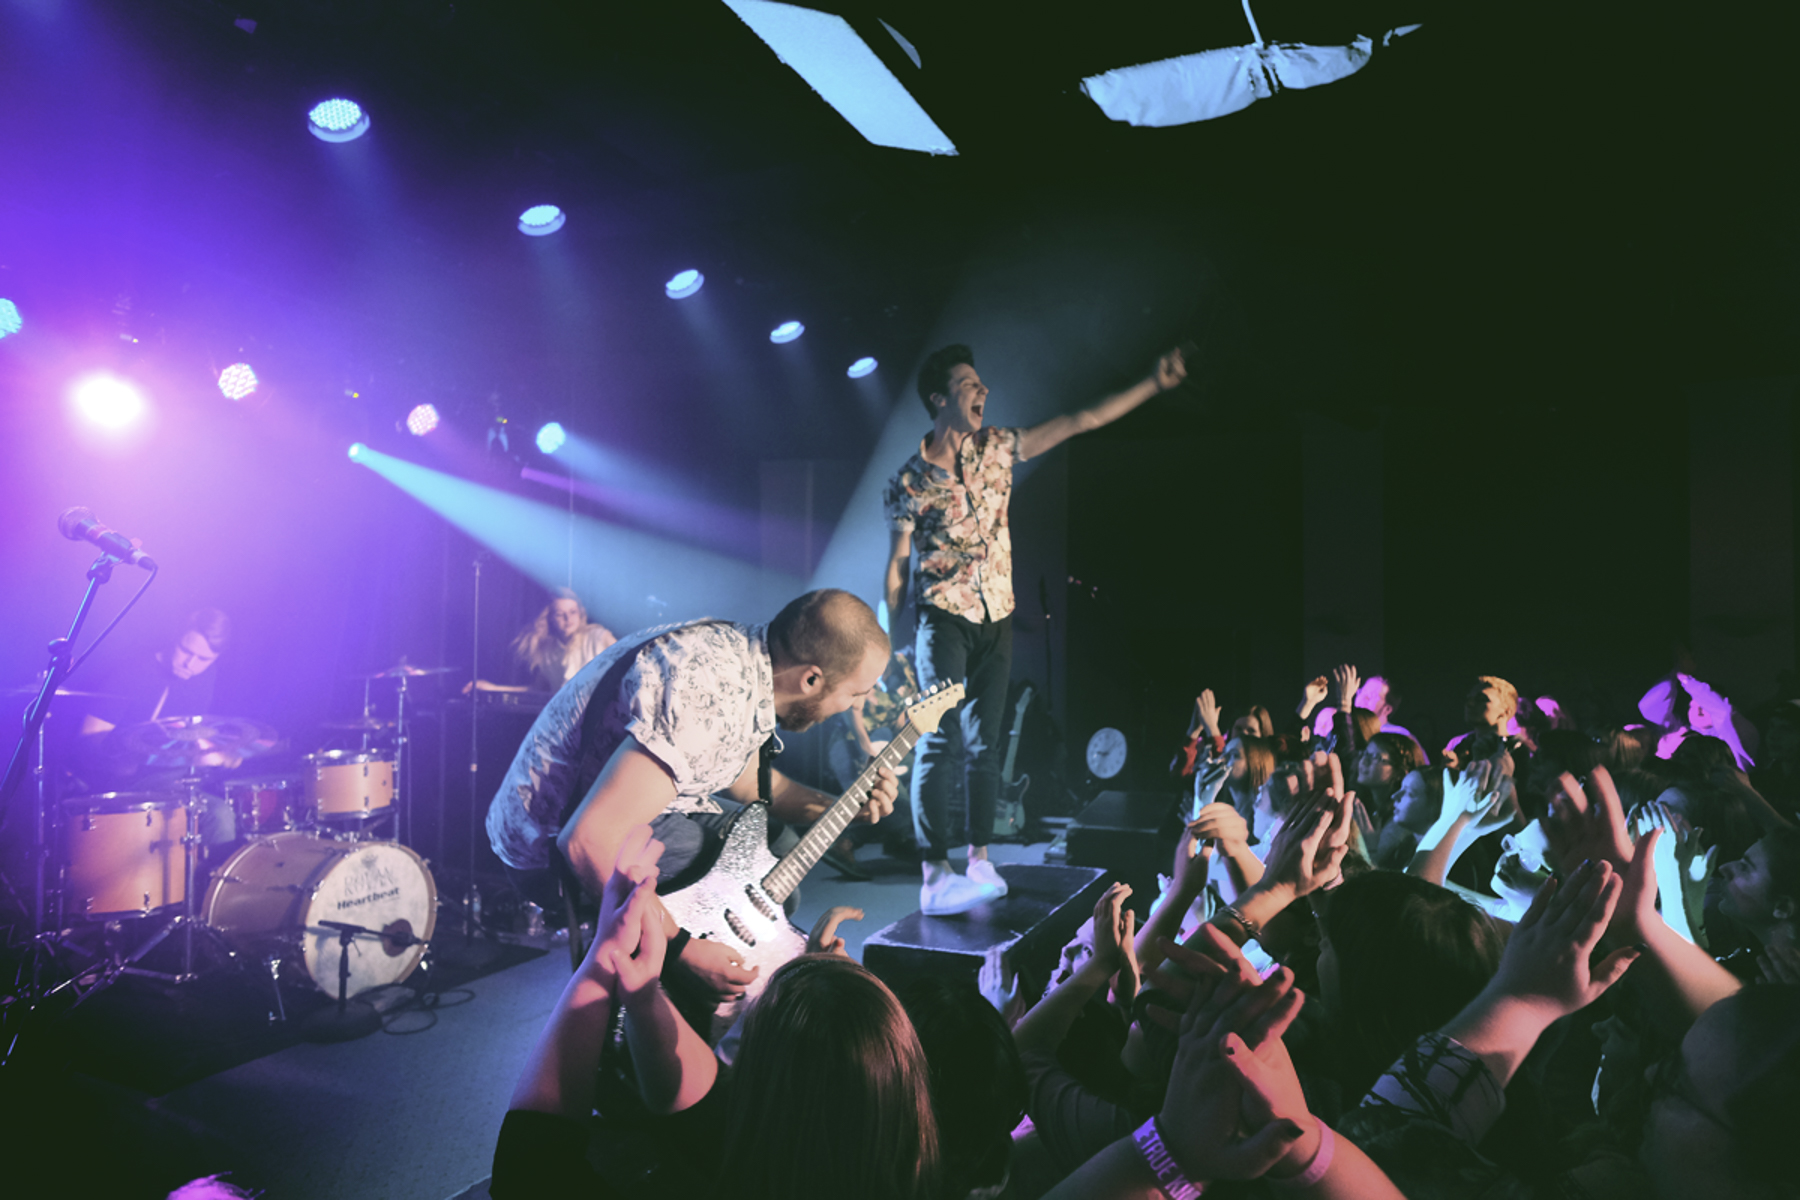 concert photography // katherine.ruth photography